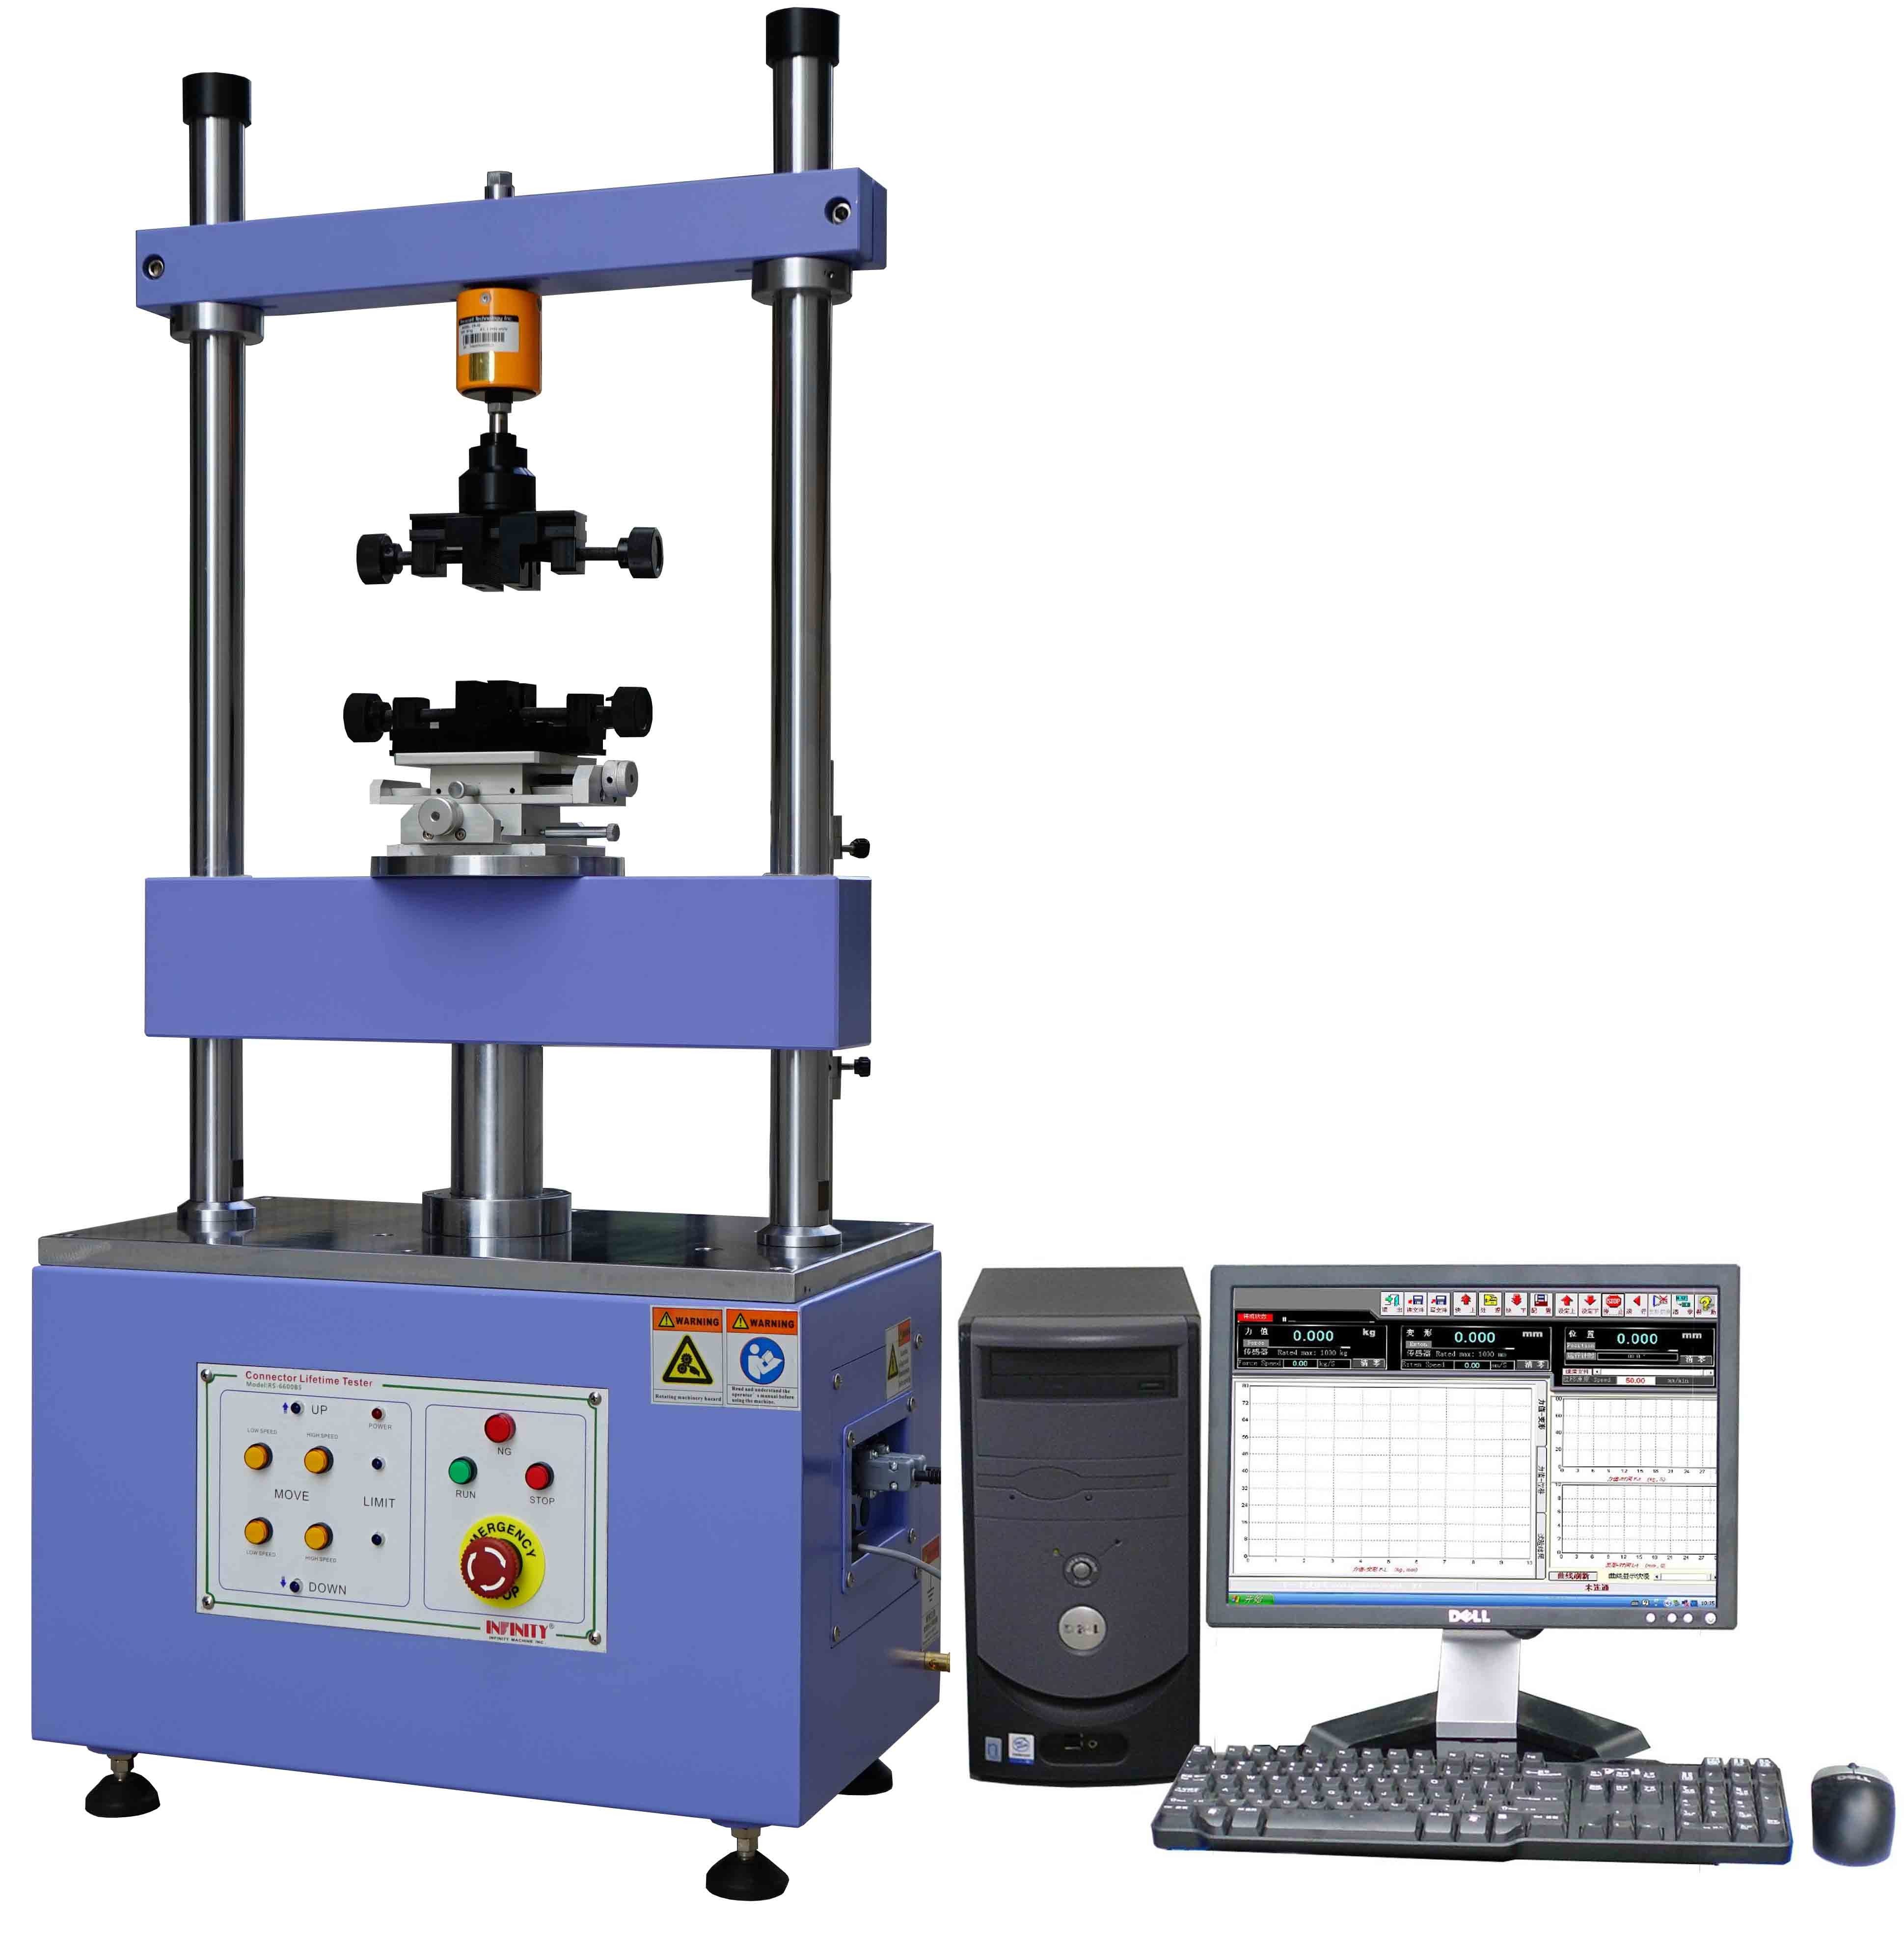 Auto Electronic Product Tester Machine for Connectors Inserting and Extracting Testing